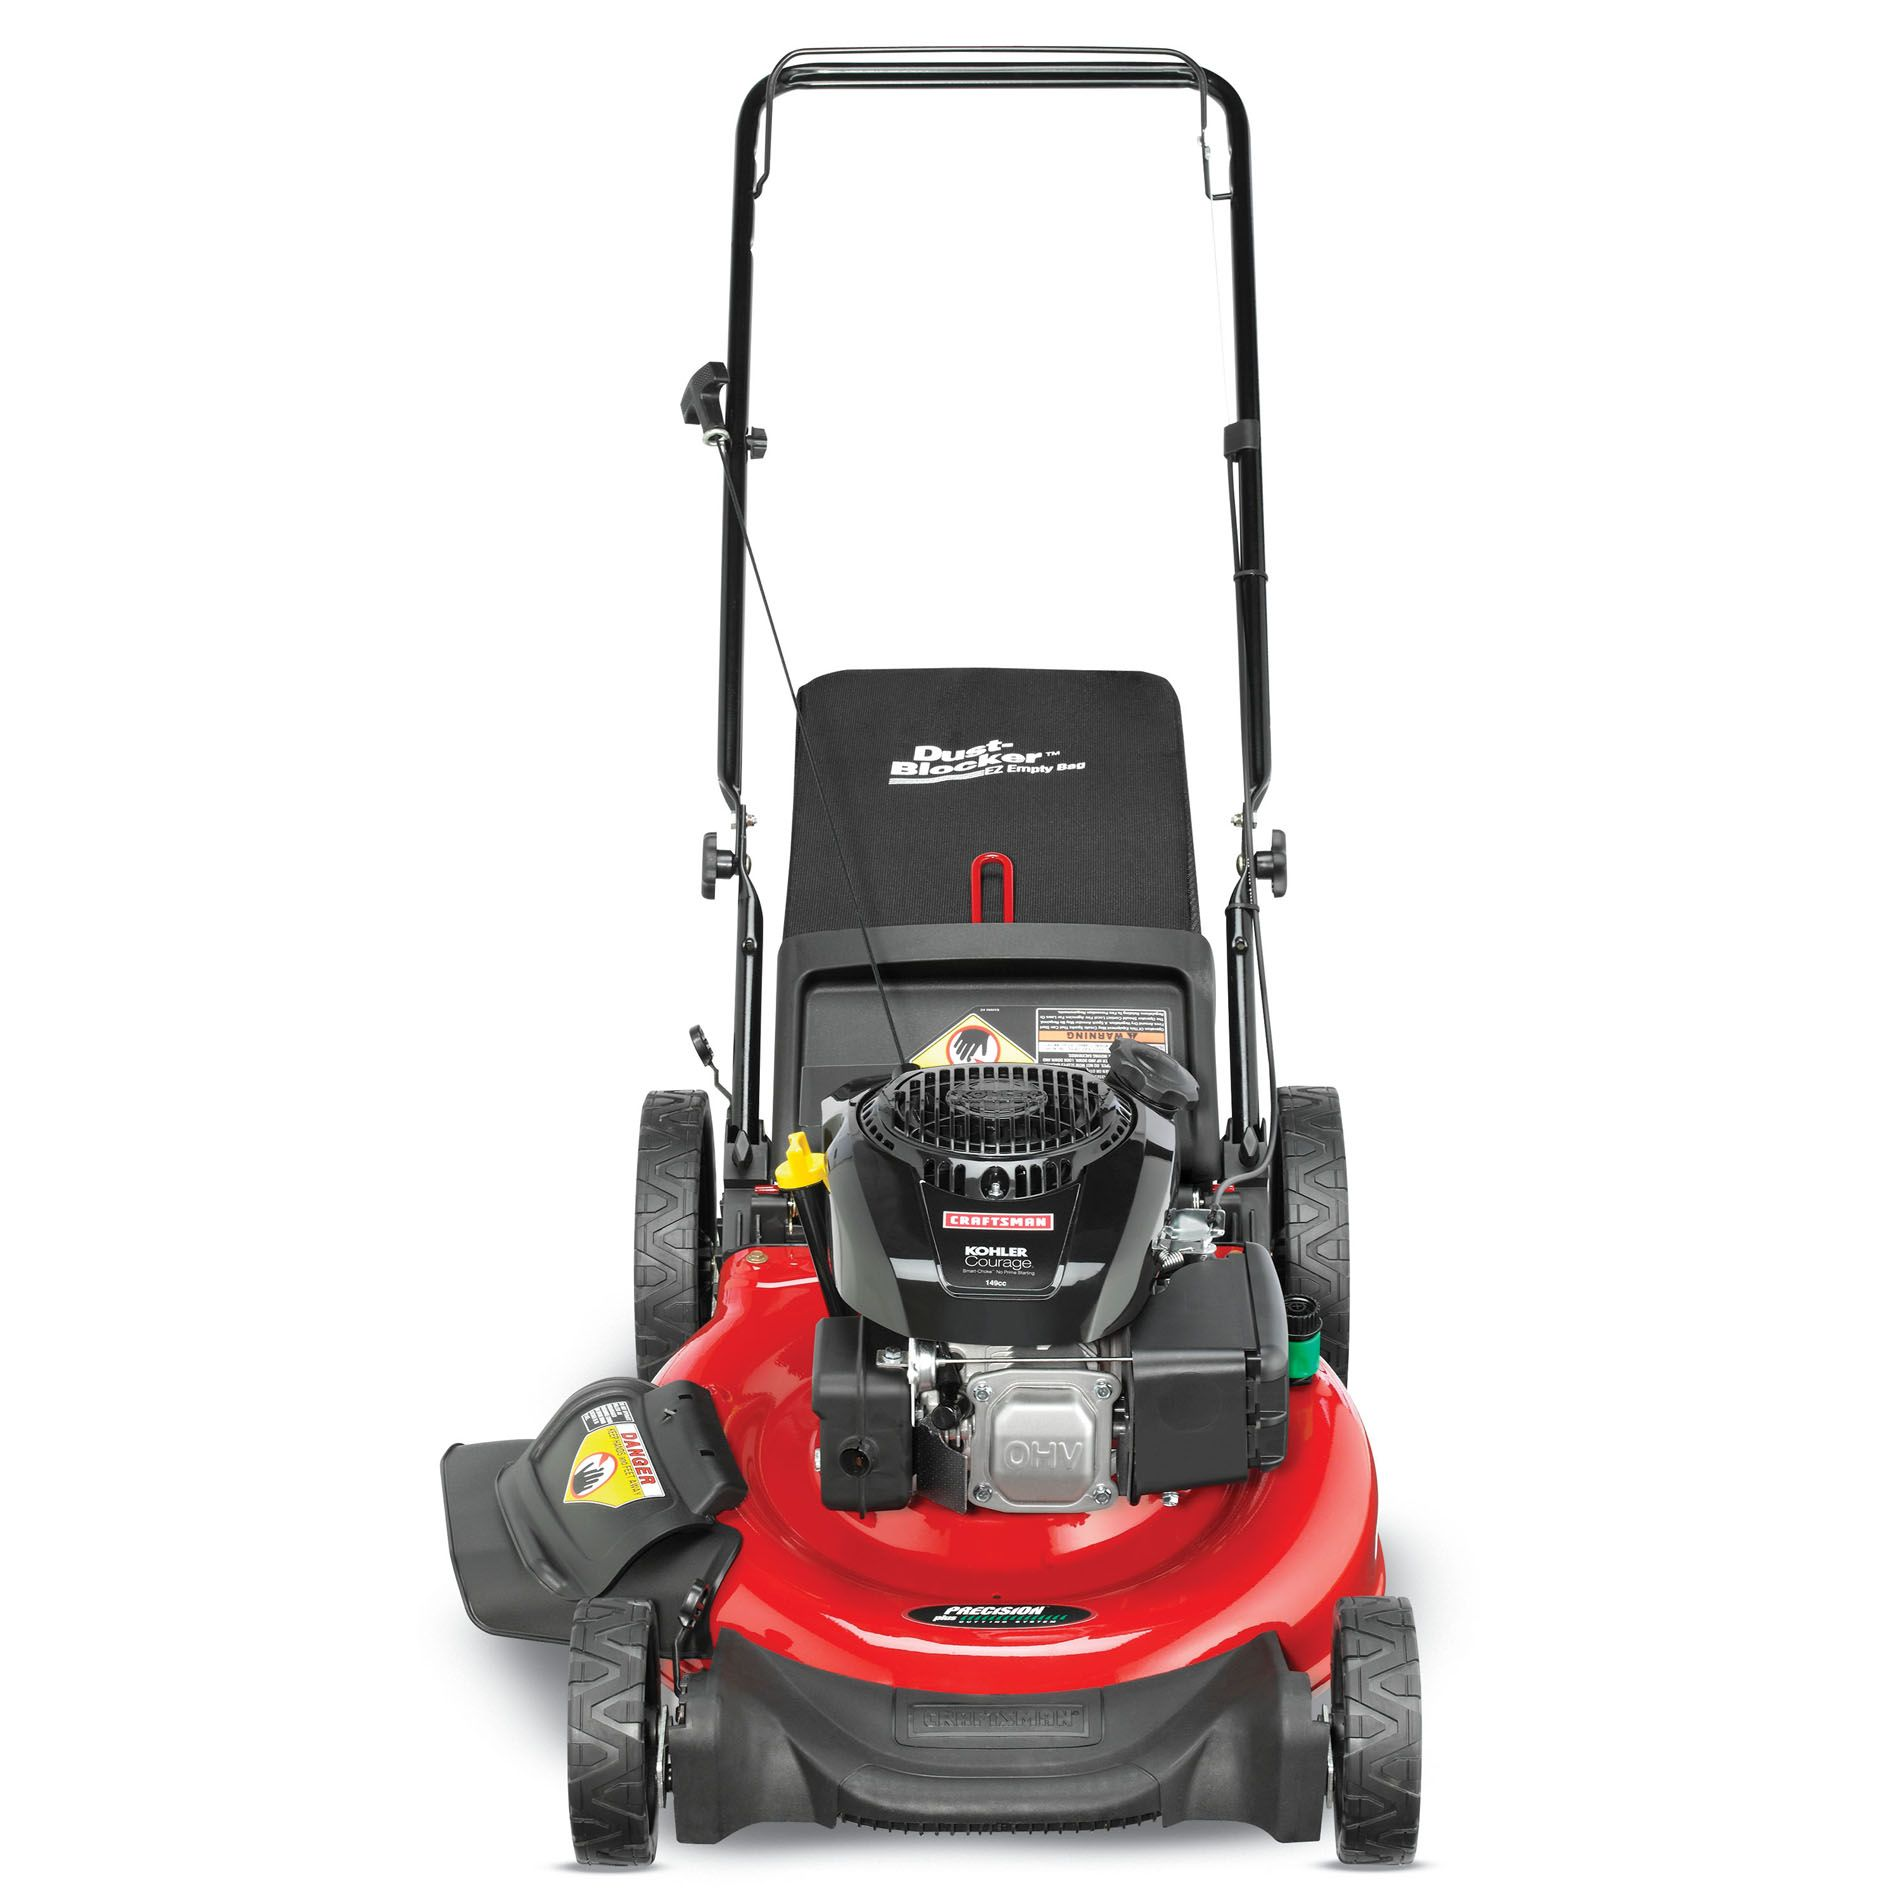 "Craftsman 149cc* Kohler Engine, 21"" Rear Bag Push Mower"